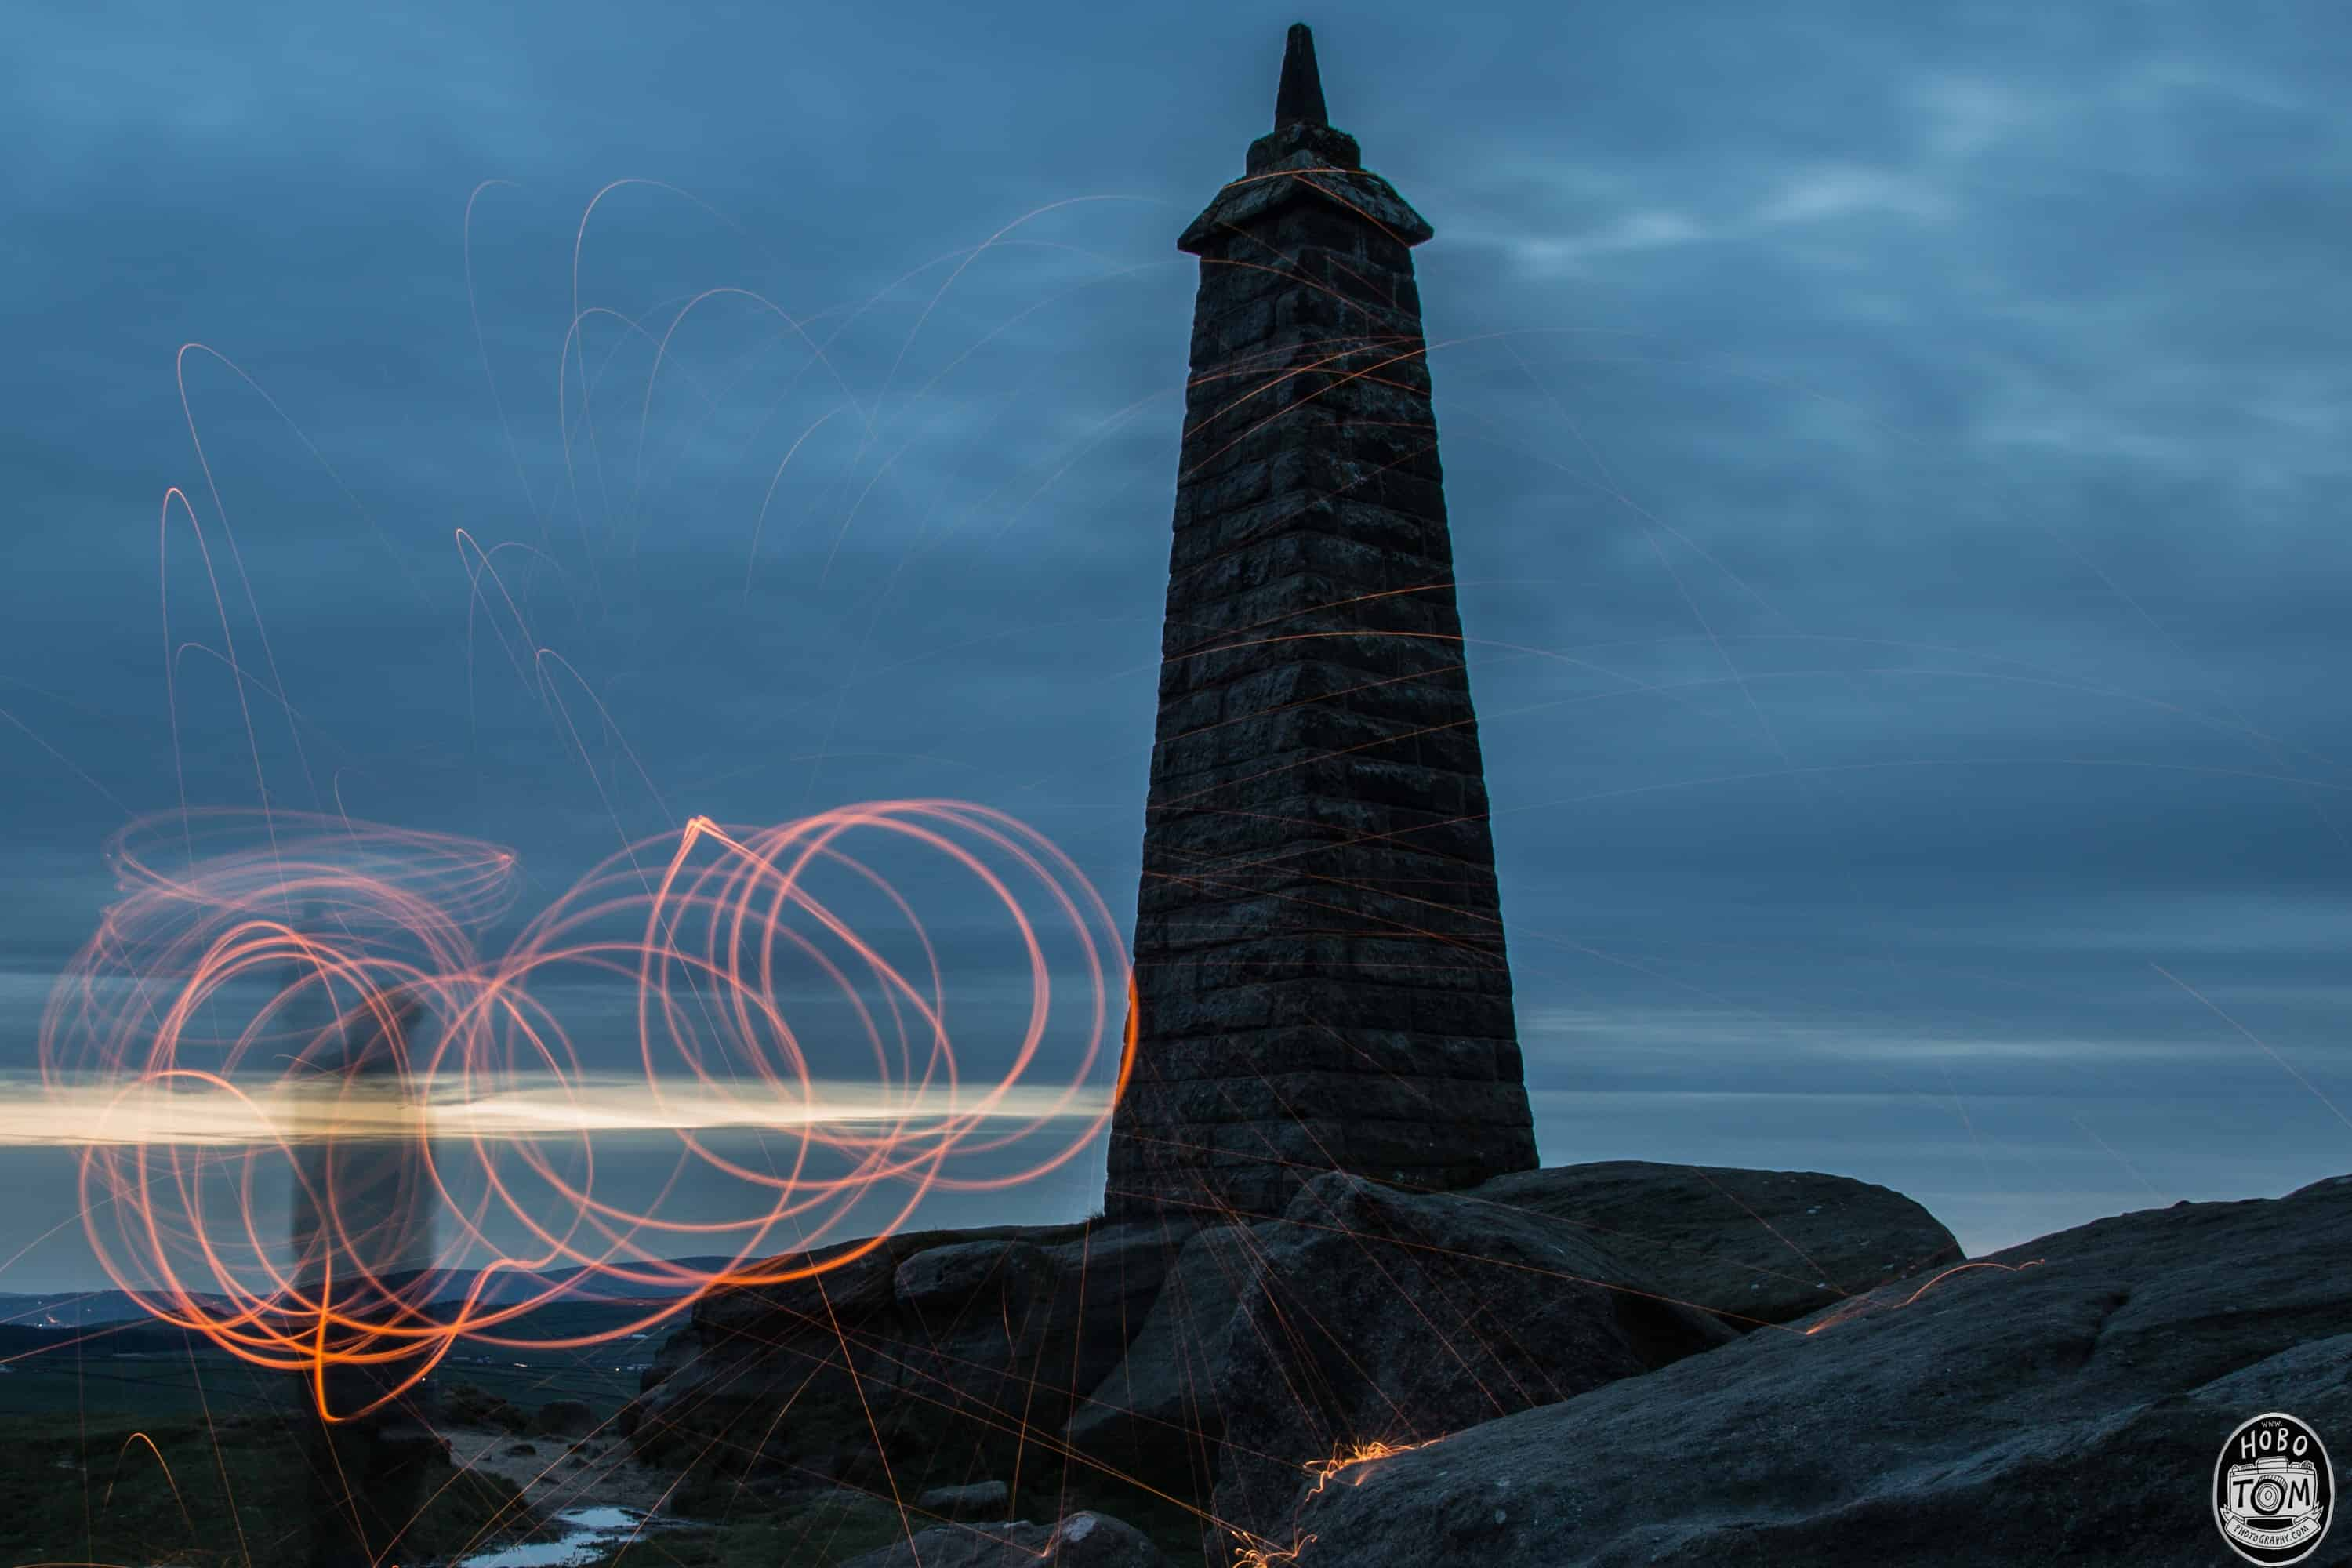 Wire wool spinning at Cowling Pinnacle